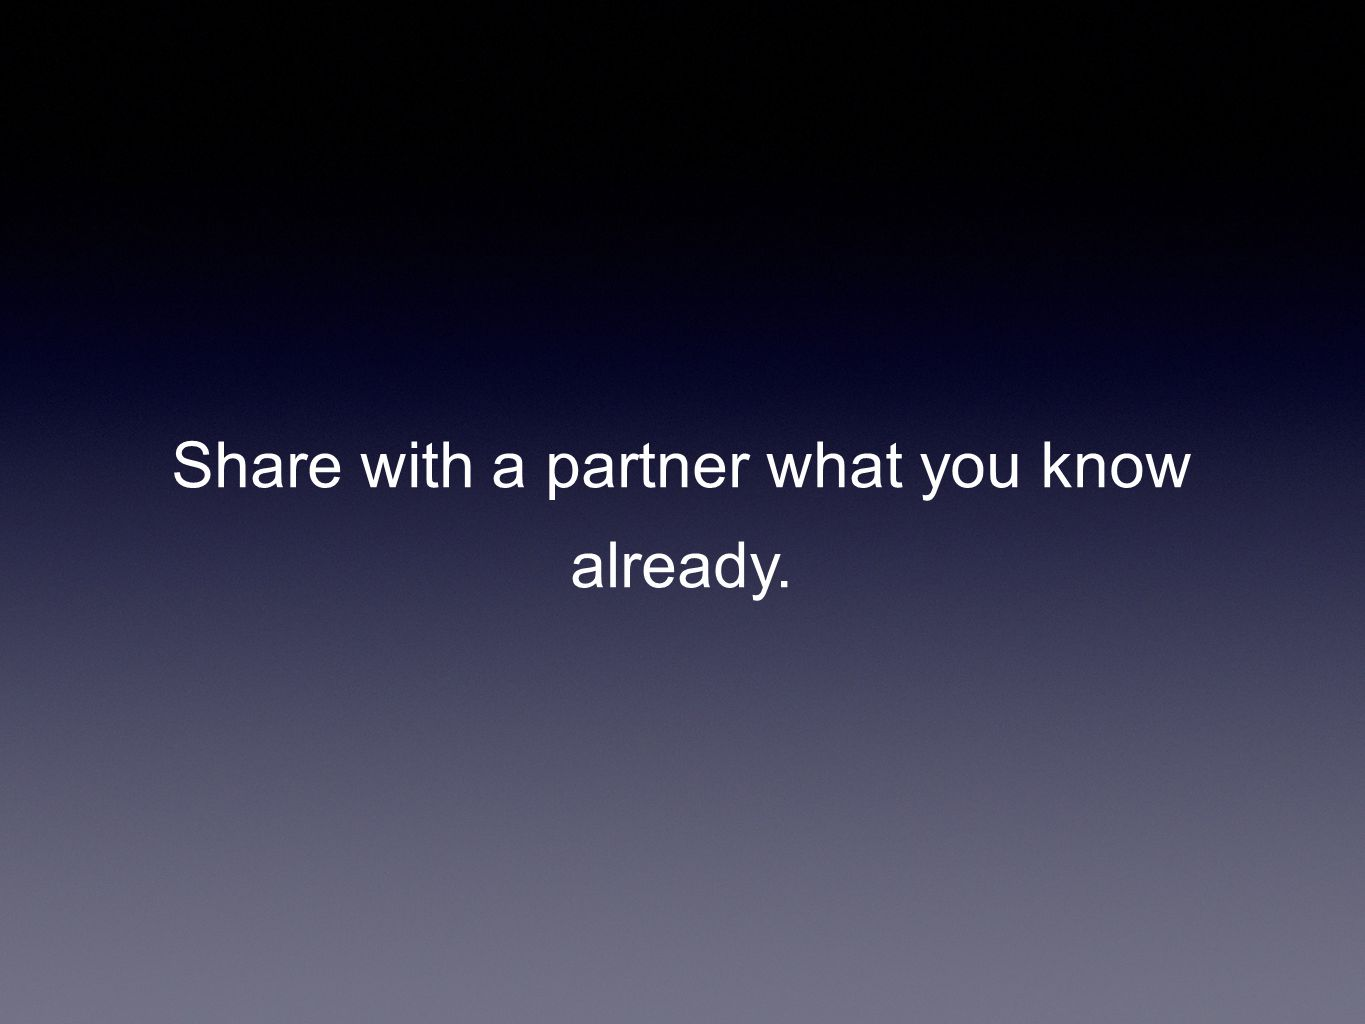 Share with a partner what you know already.